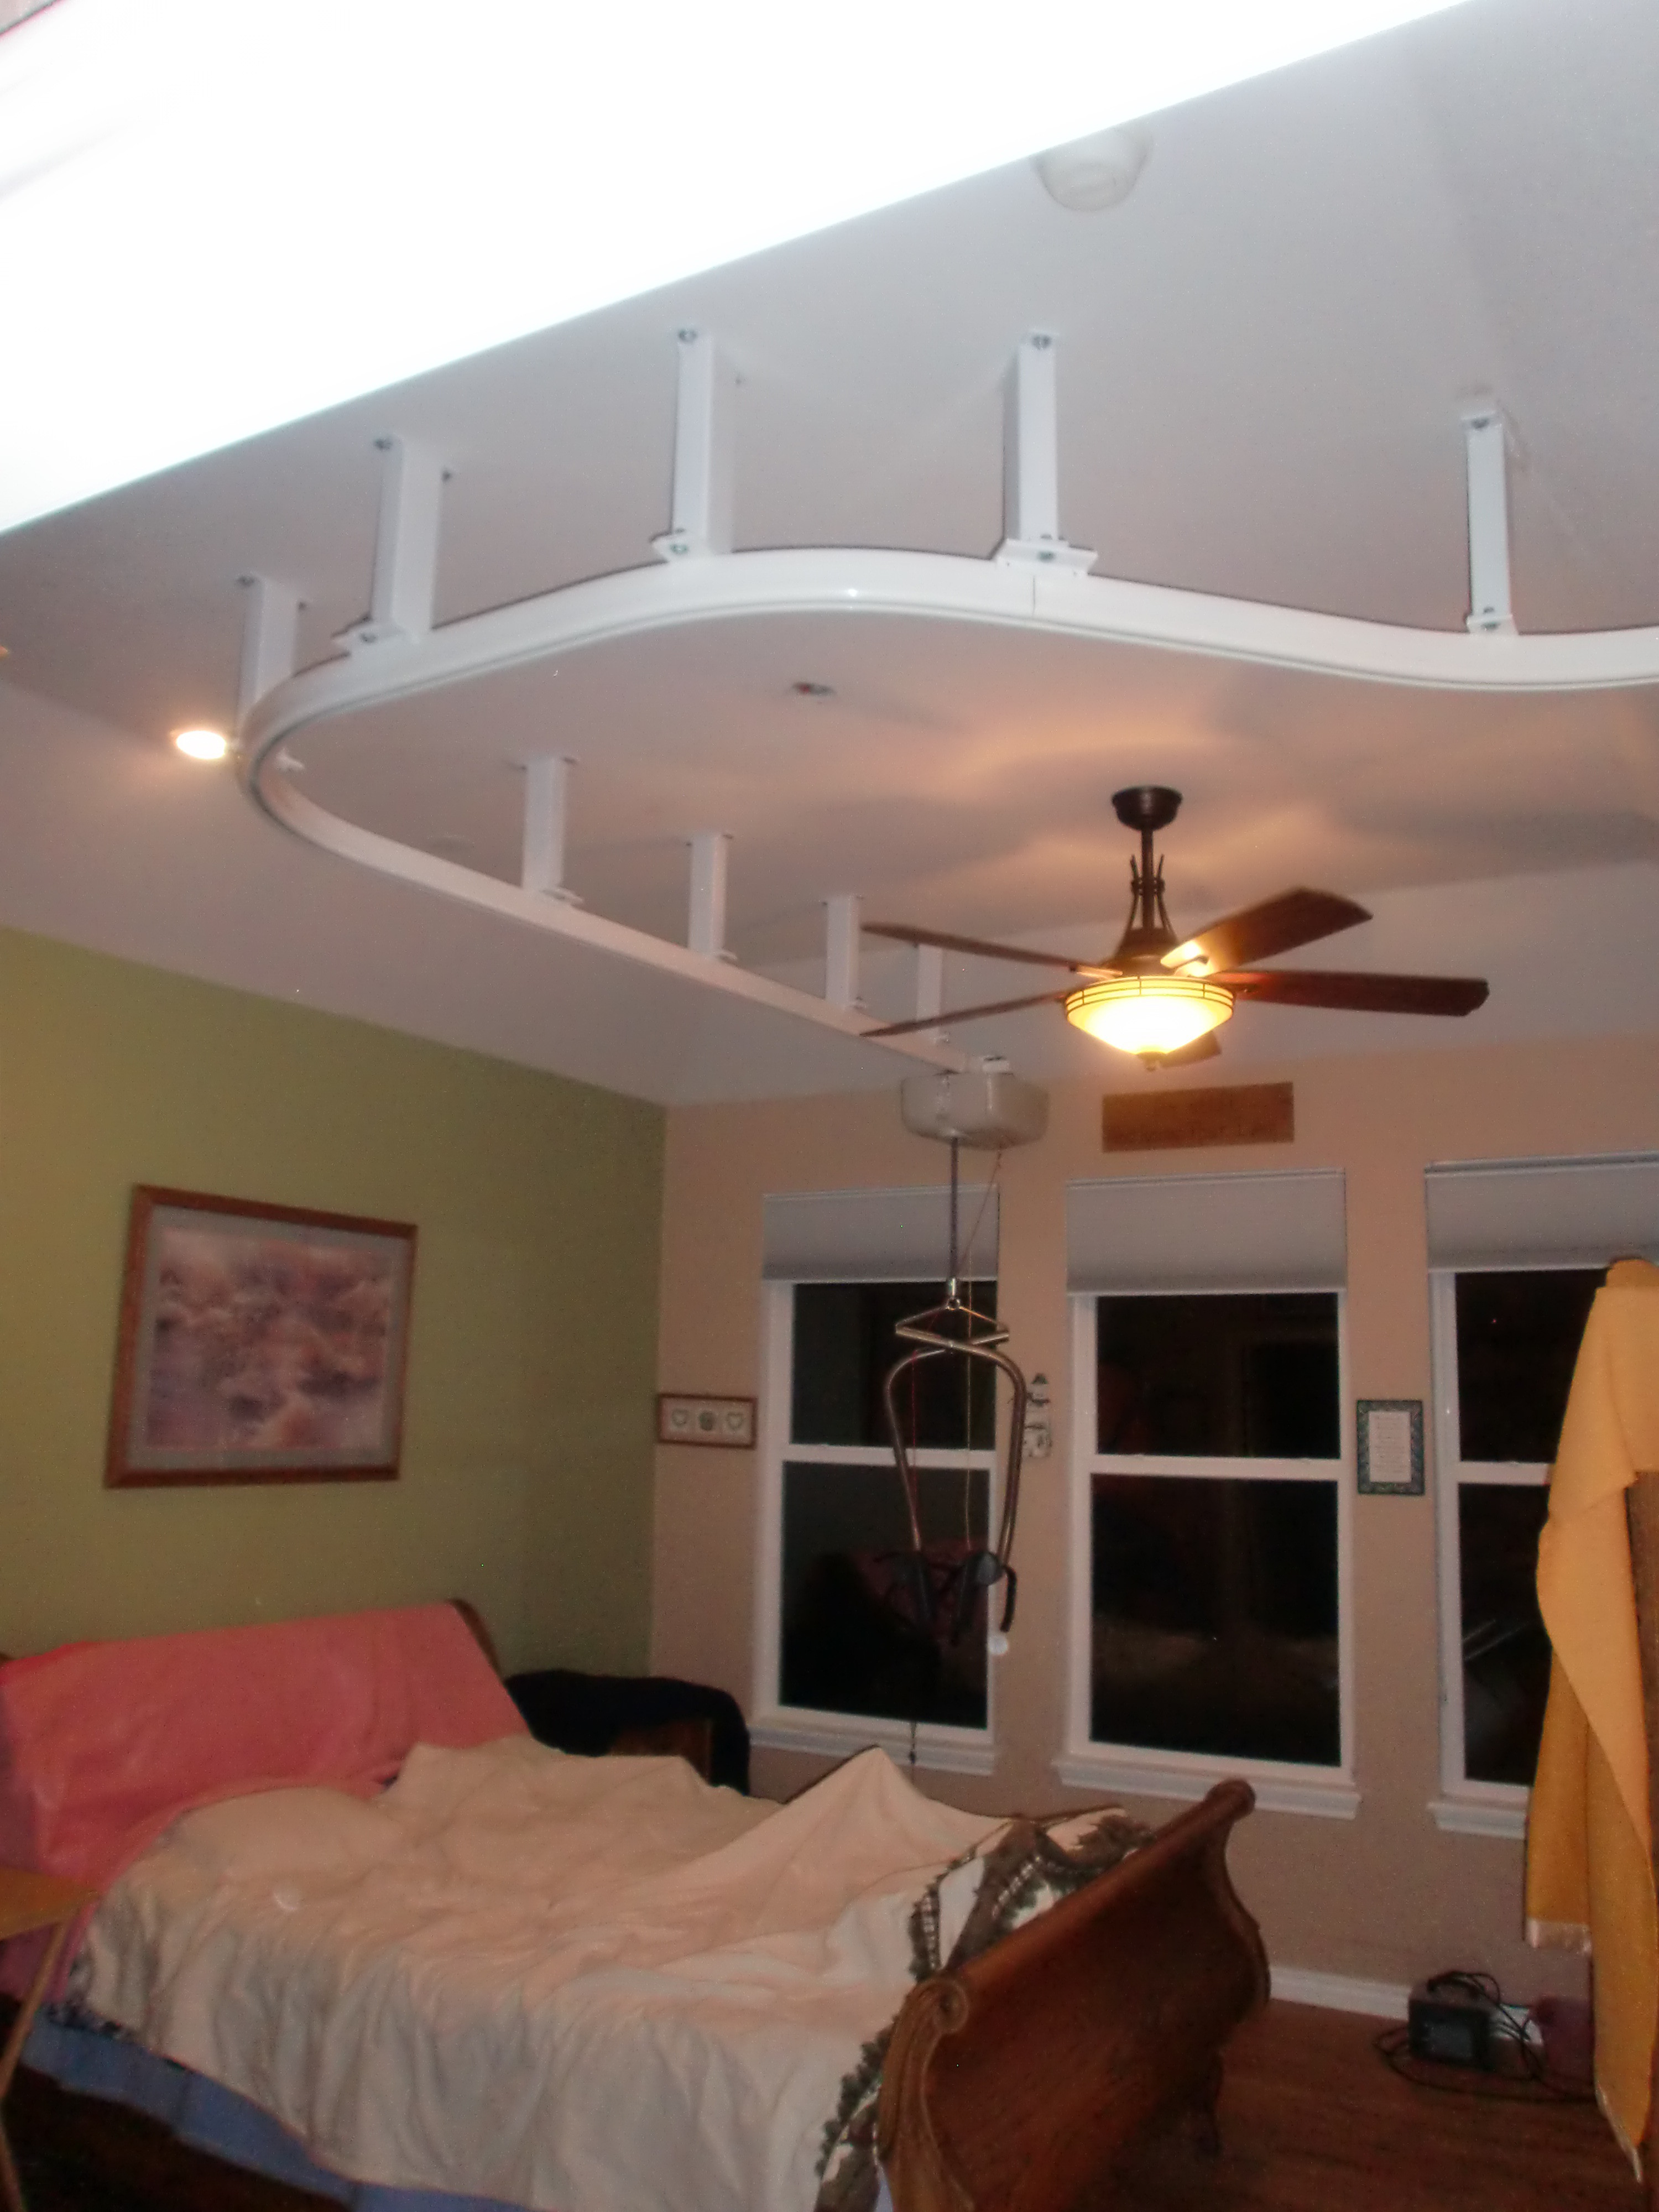 Suspended Ceiling Lift goes from bedroom to bathroom in